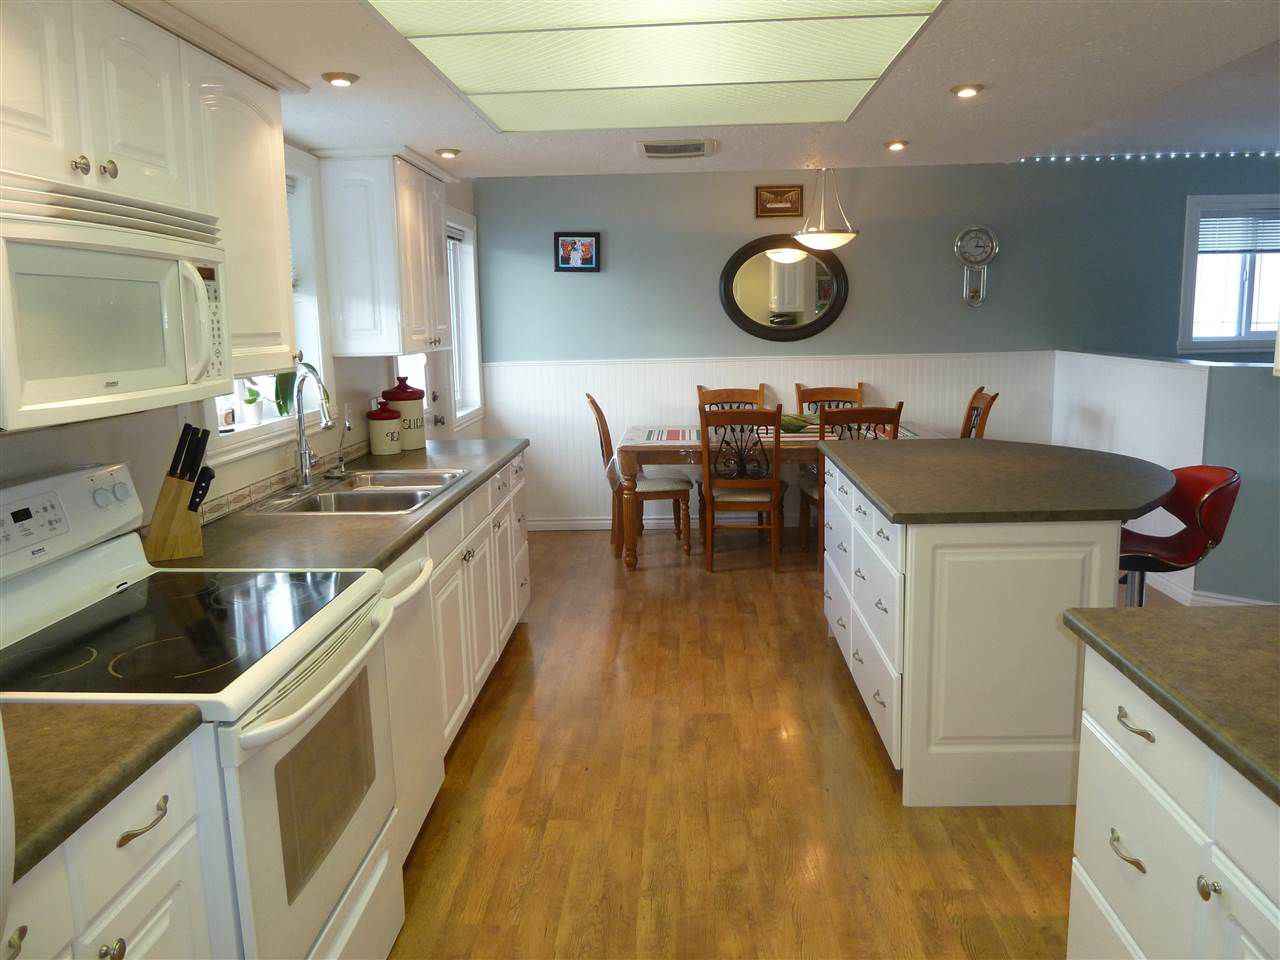 with a kitchen big enough that everyone can pitch in to get that birthday meal on the table